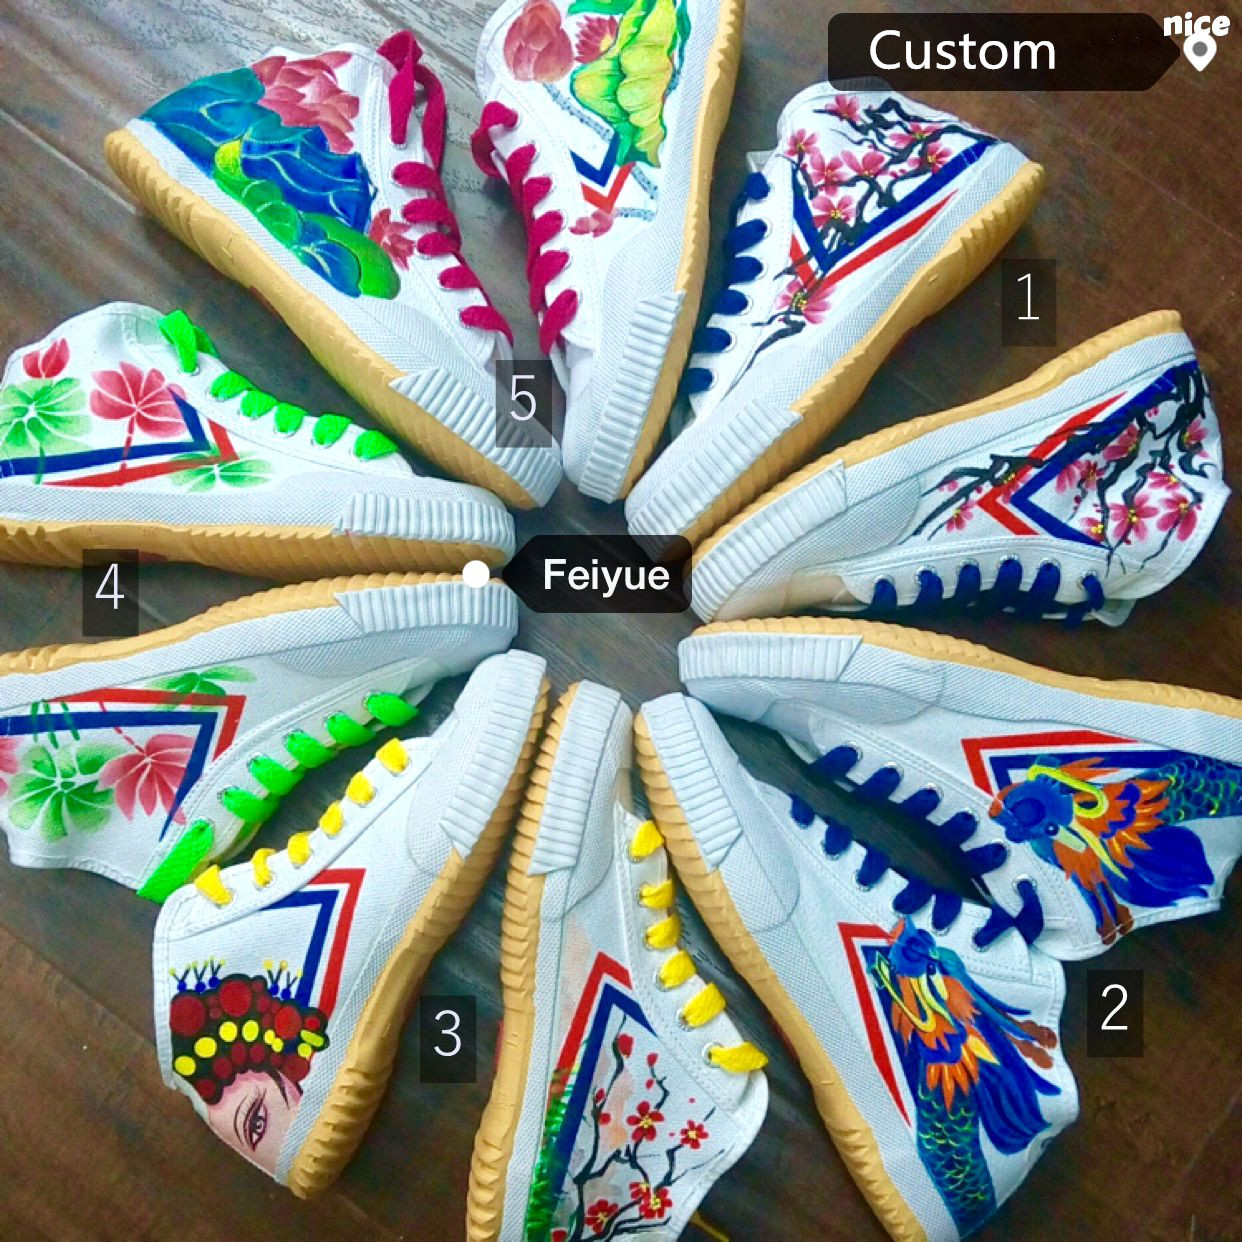 Custom Feiyue Shoes